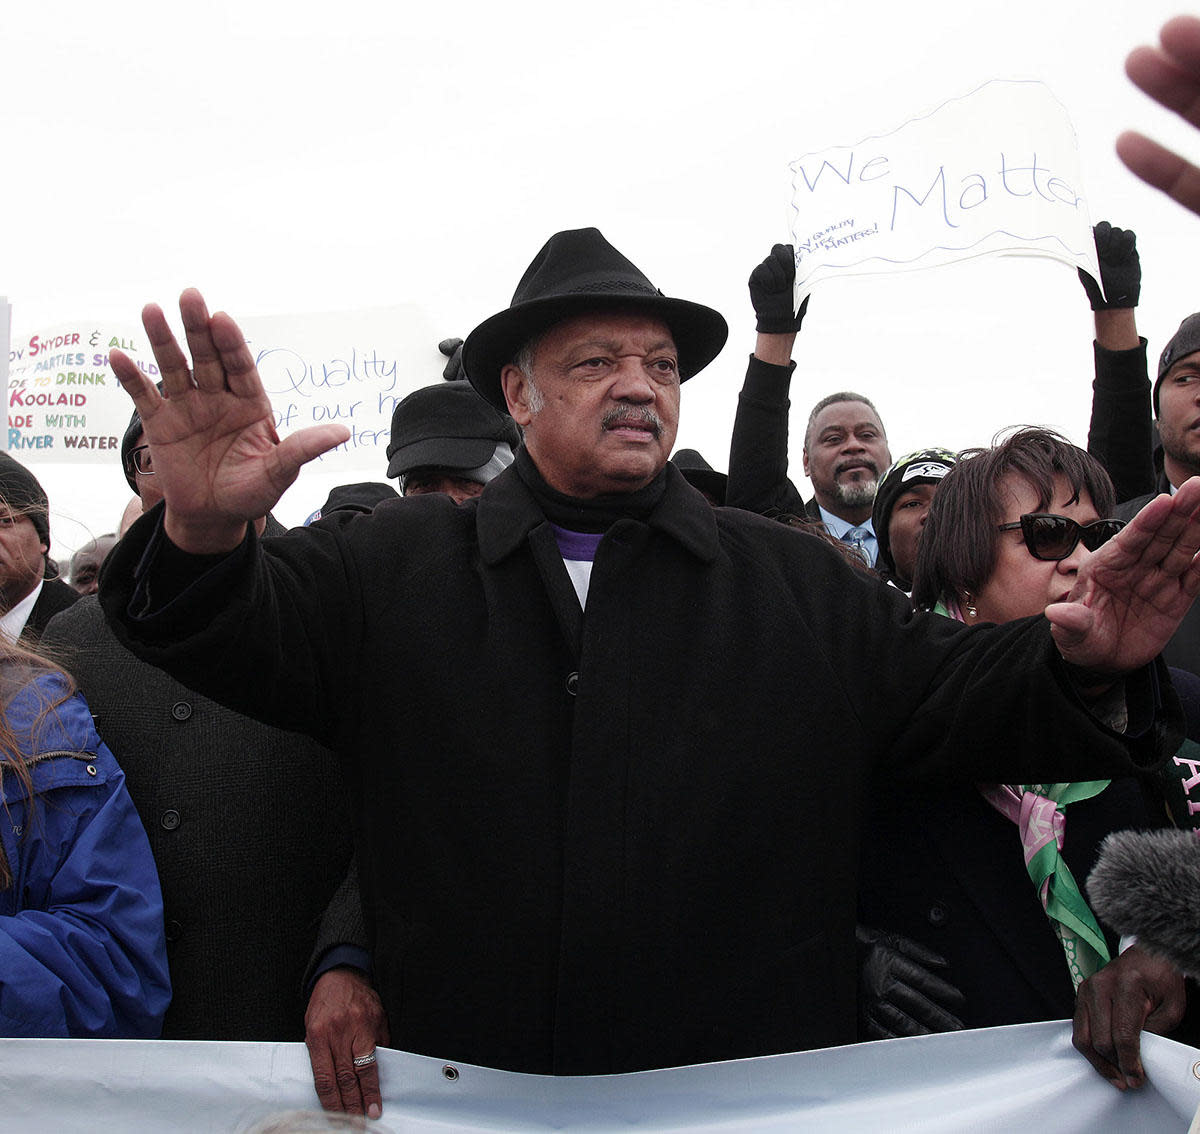 Jesse Jackson walking in a national mile-long march he helped organize to highlight the push for clean water in Flint, Michigan, 2016. (Credit: Bill Pugliano/Getty Images)